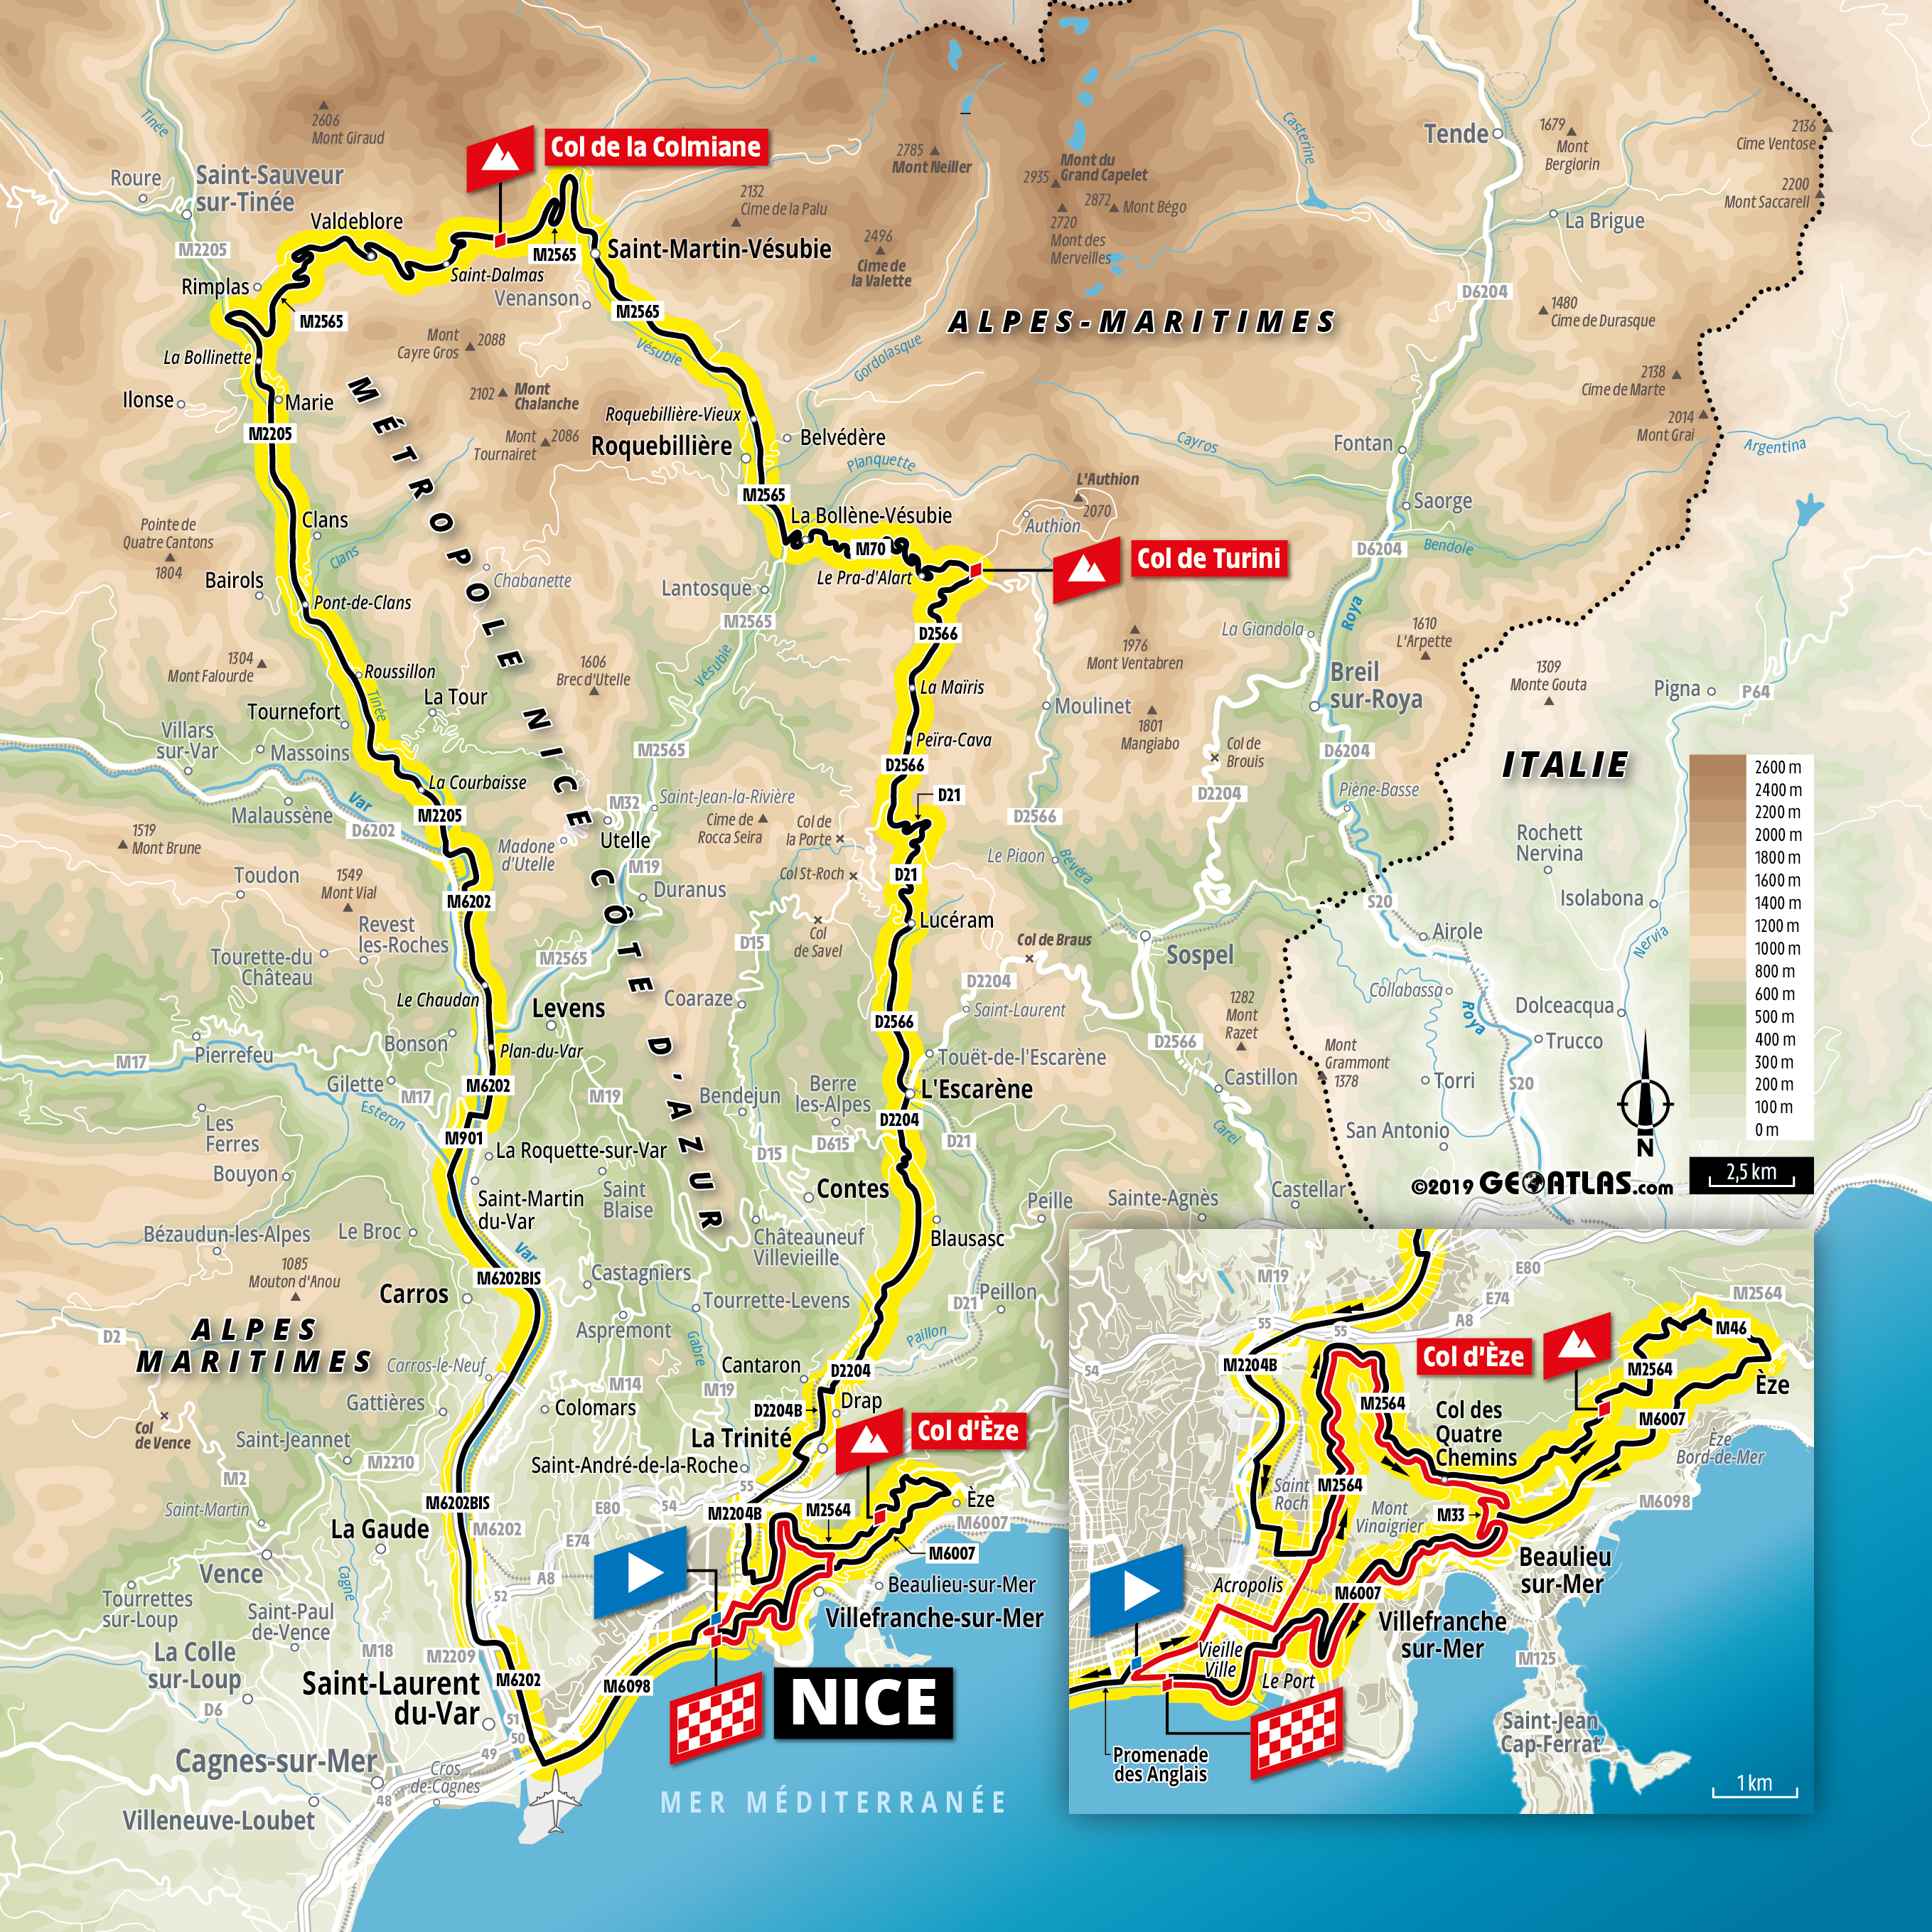 Tour De France 2020 Dates And Route Tour de France 2020: Tough Grand Départ in Nice as stage one and